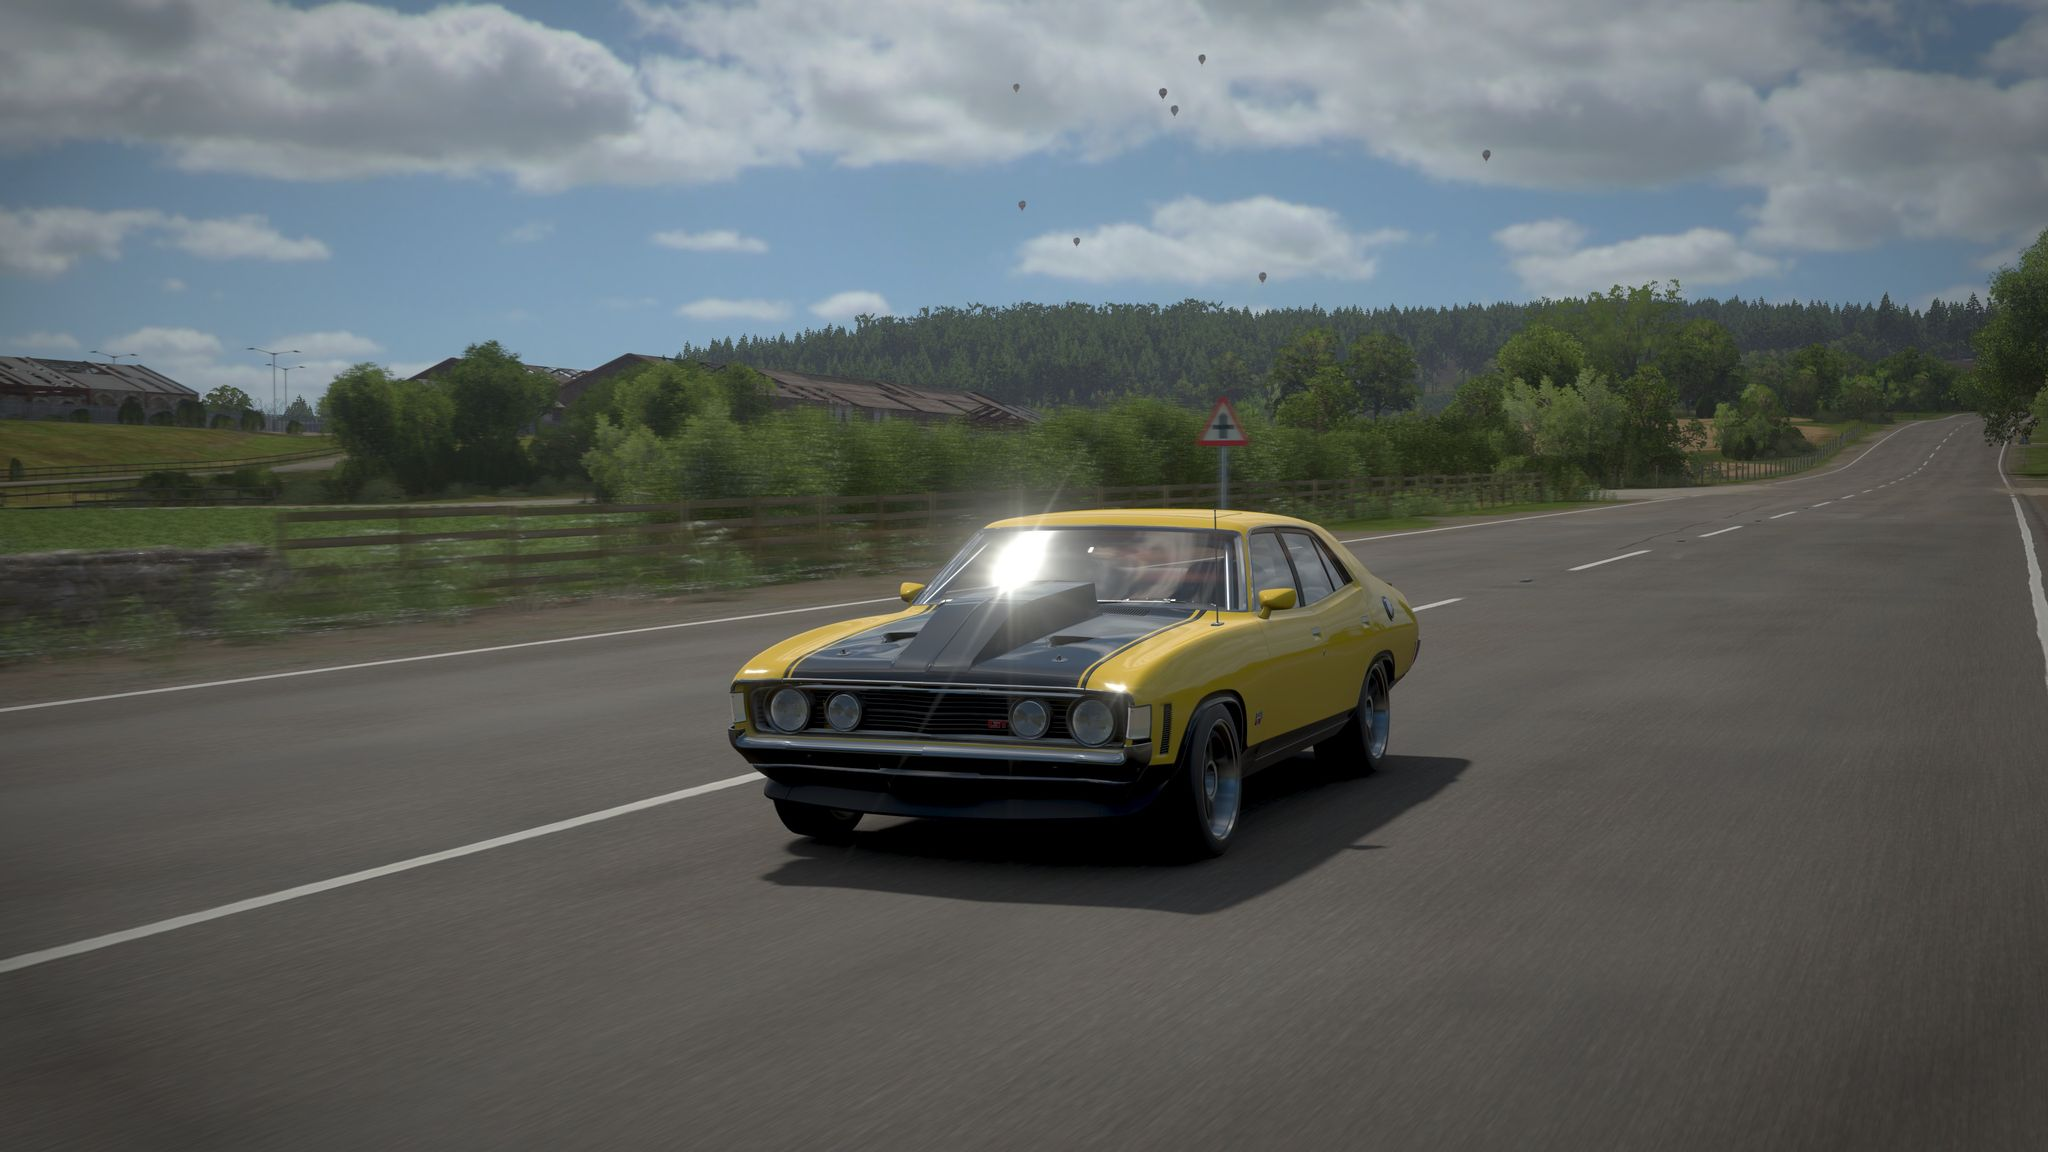 A screenshot from Forza Horizon 4 showing a GT-HO Falcon driving down a long empty road with trees and fields on either side.